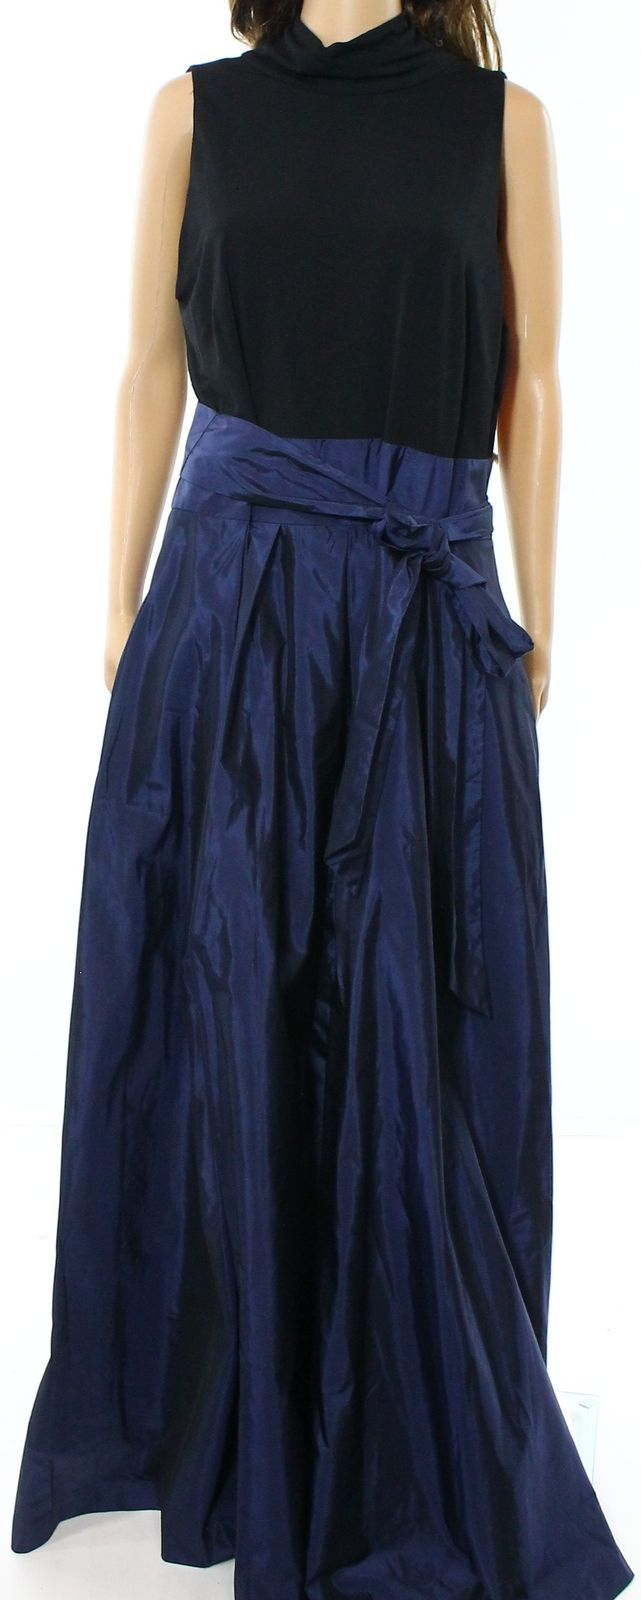 Awesome awesome lauren ralph lauren new blue black tafetta belted